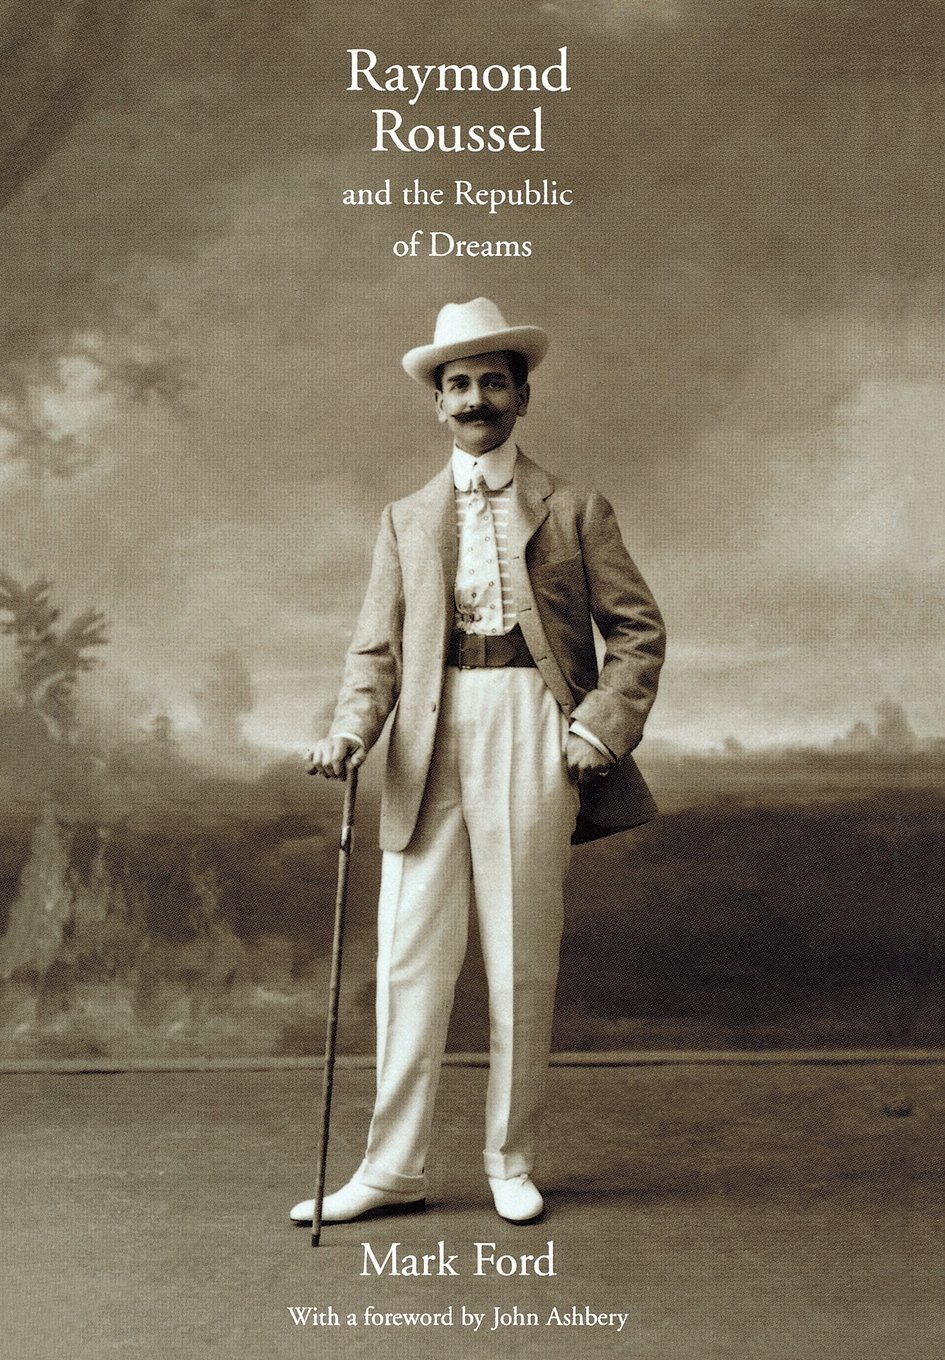 Raymond Roussel and the Republic of Dreams